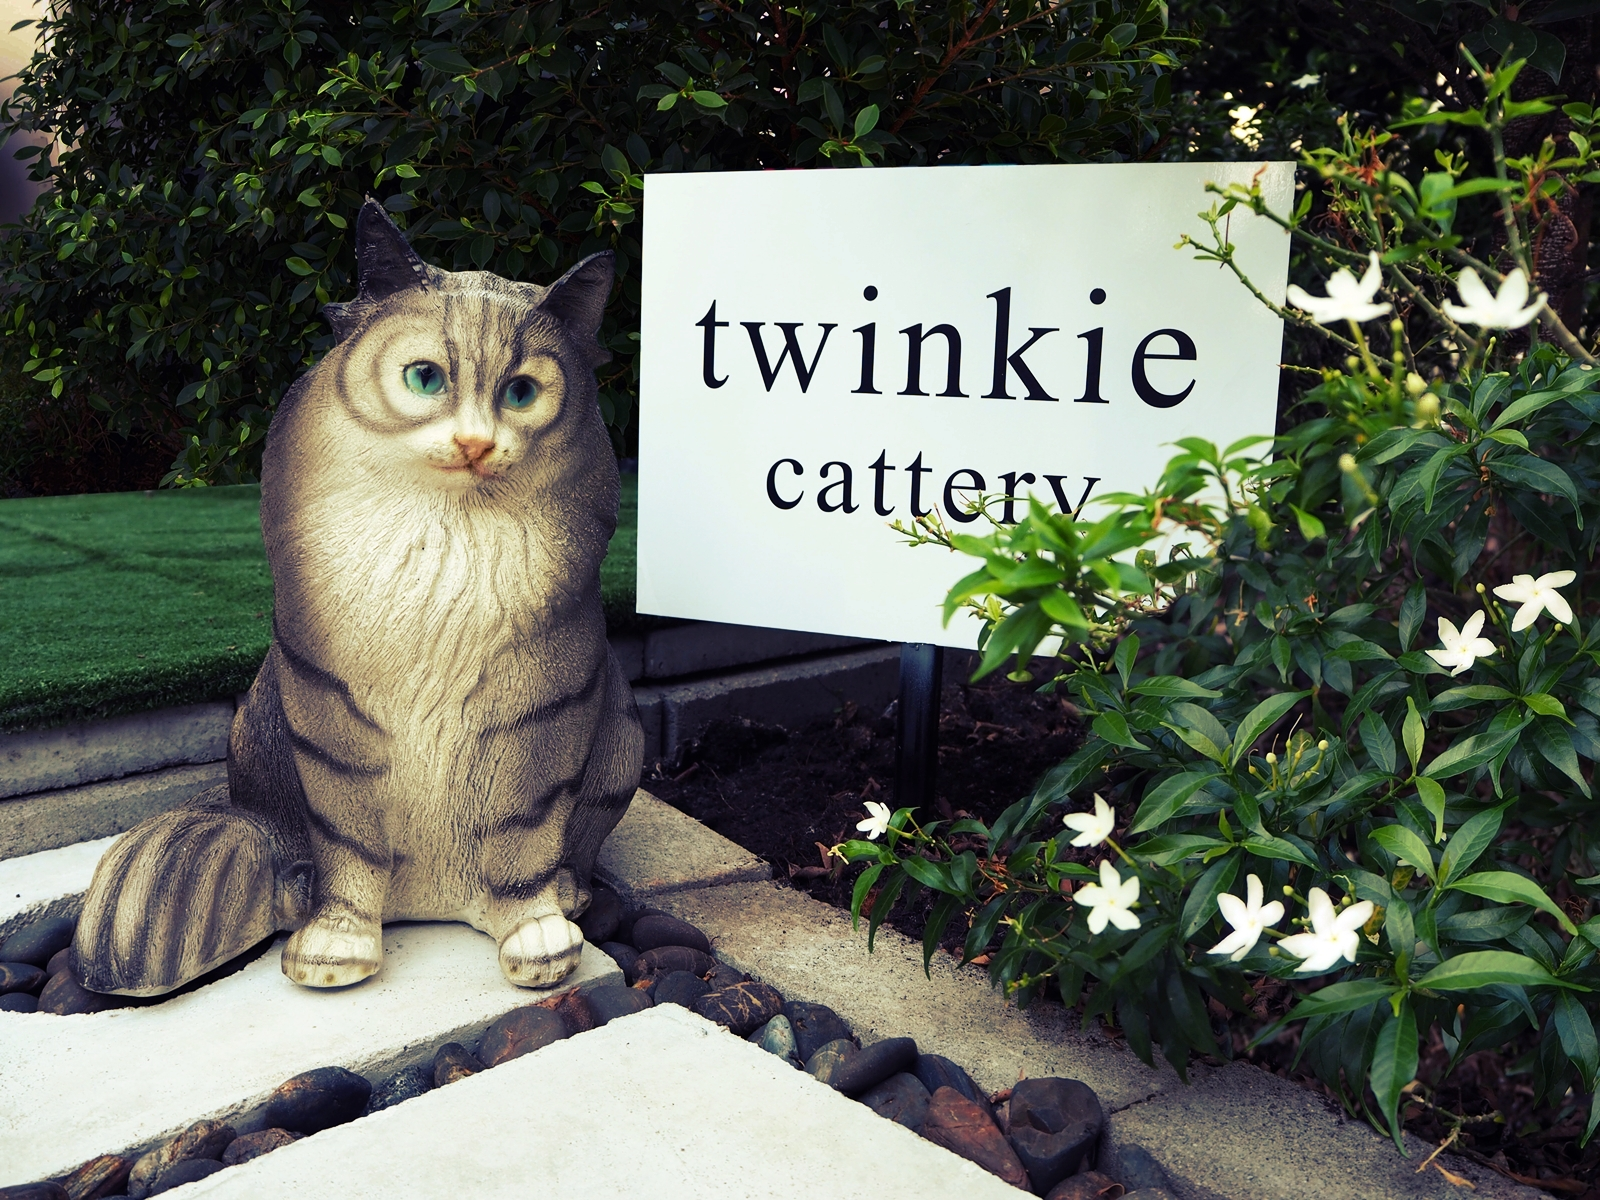 Twinkie's Cattery garden sign